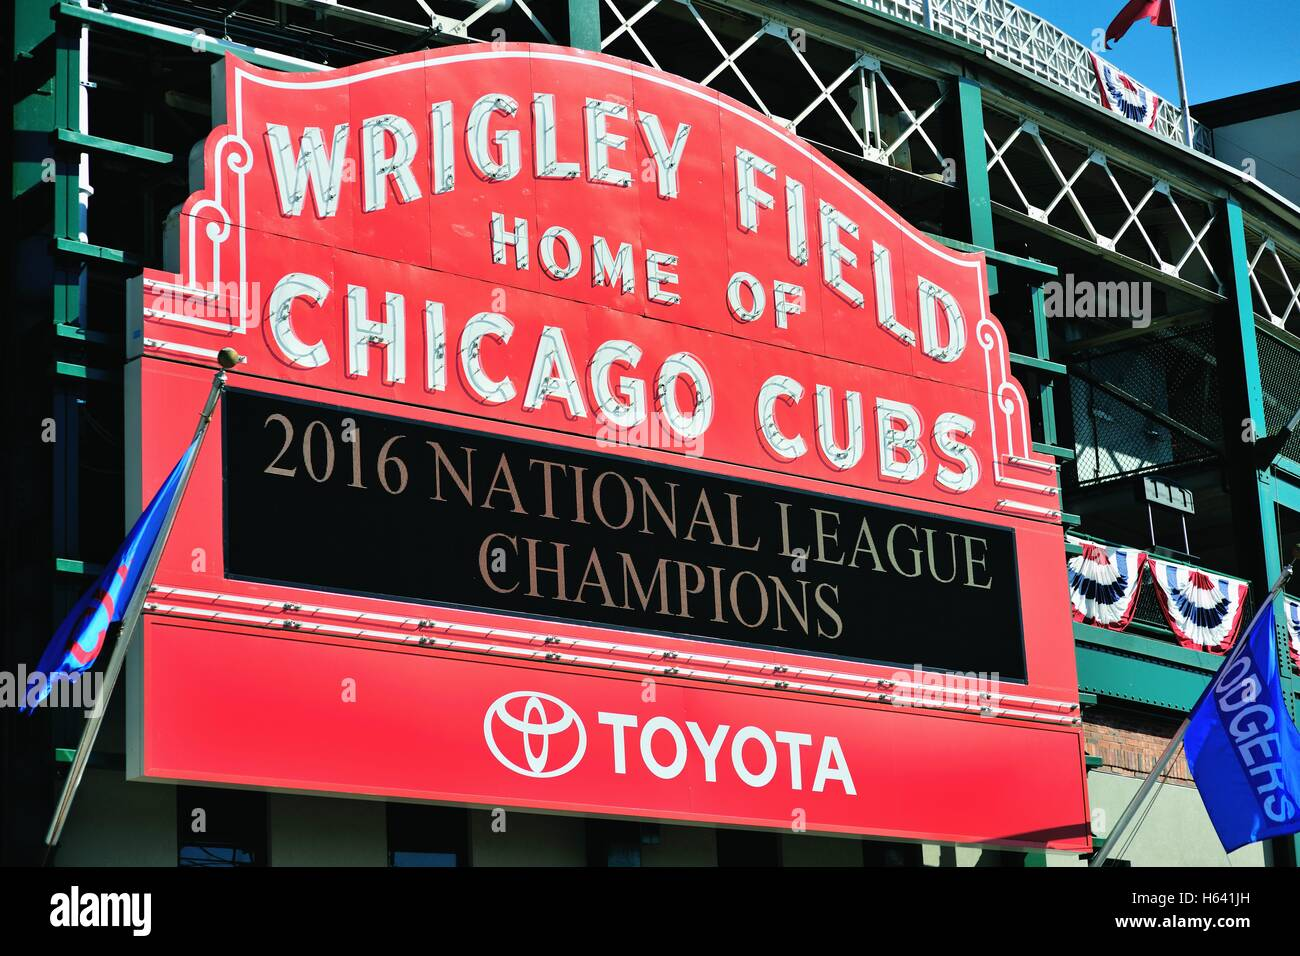 An excruciating long wait was finally over as the Chicago Cubs won the National League pennant for the first time - Stock Image